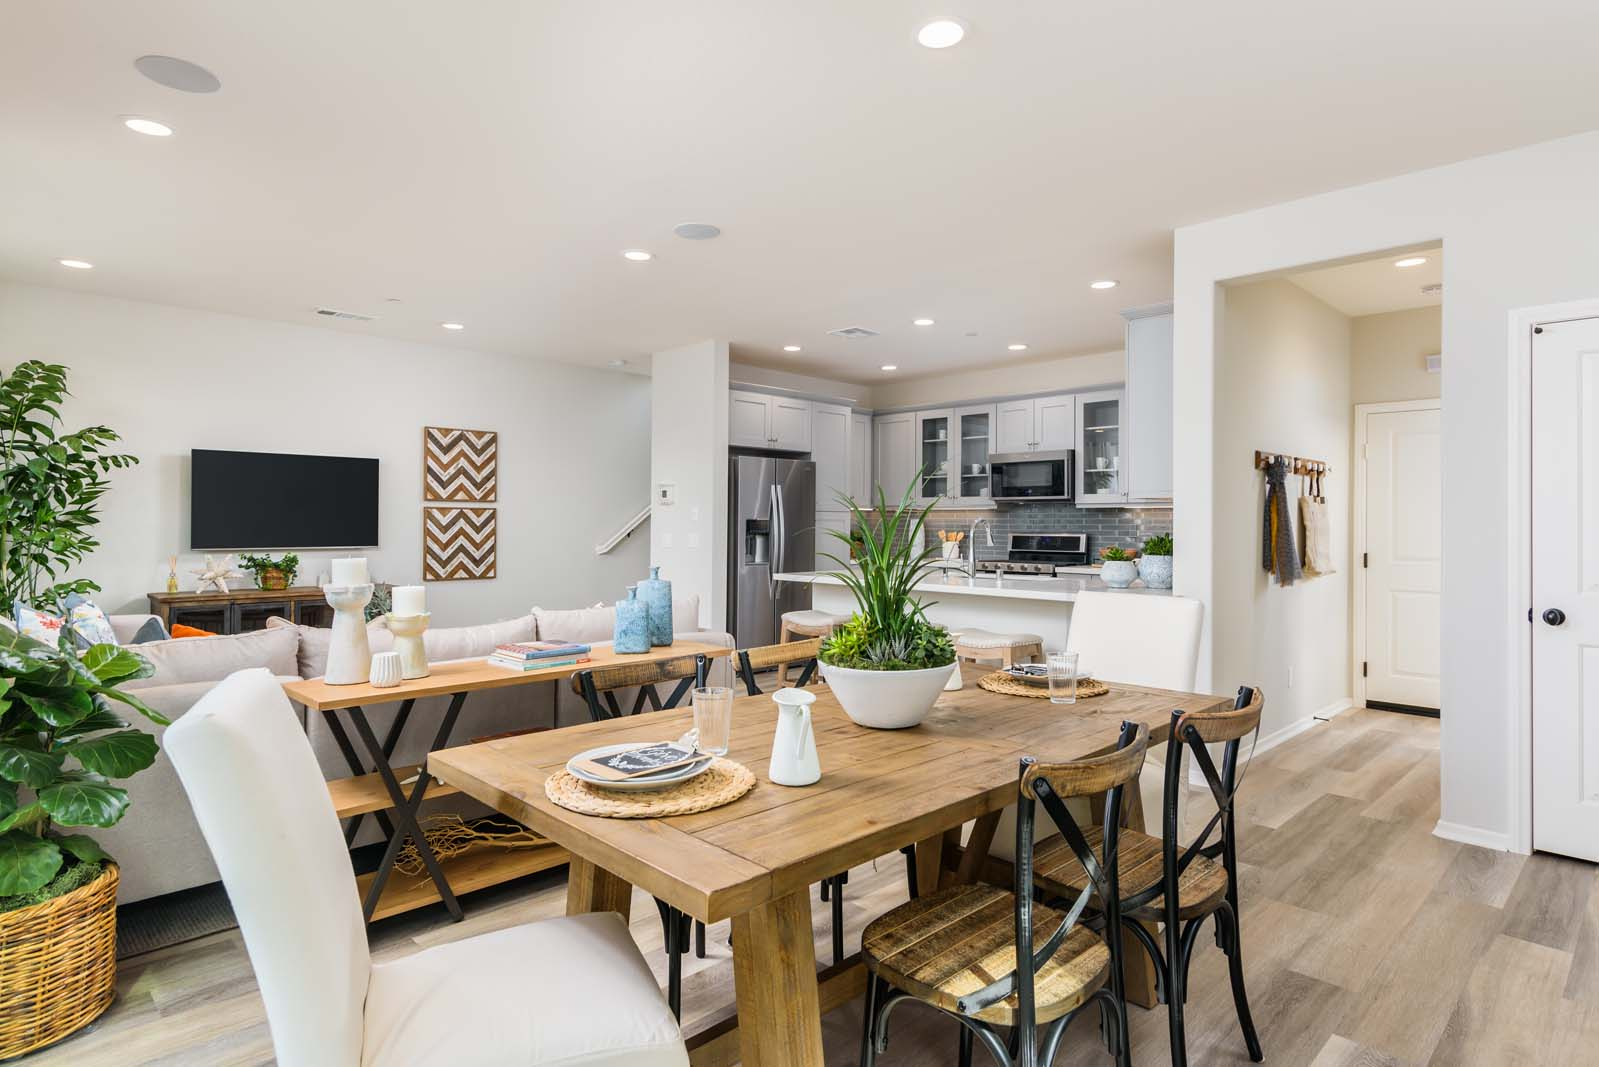 Dining to Great Room 3 Residence 3 | Flora at the Village of Escaya in Chula Vista, CA | Brookfield Residential